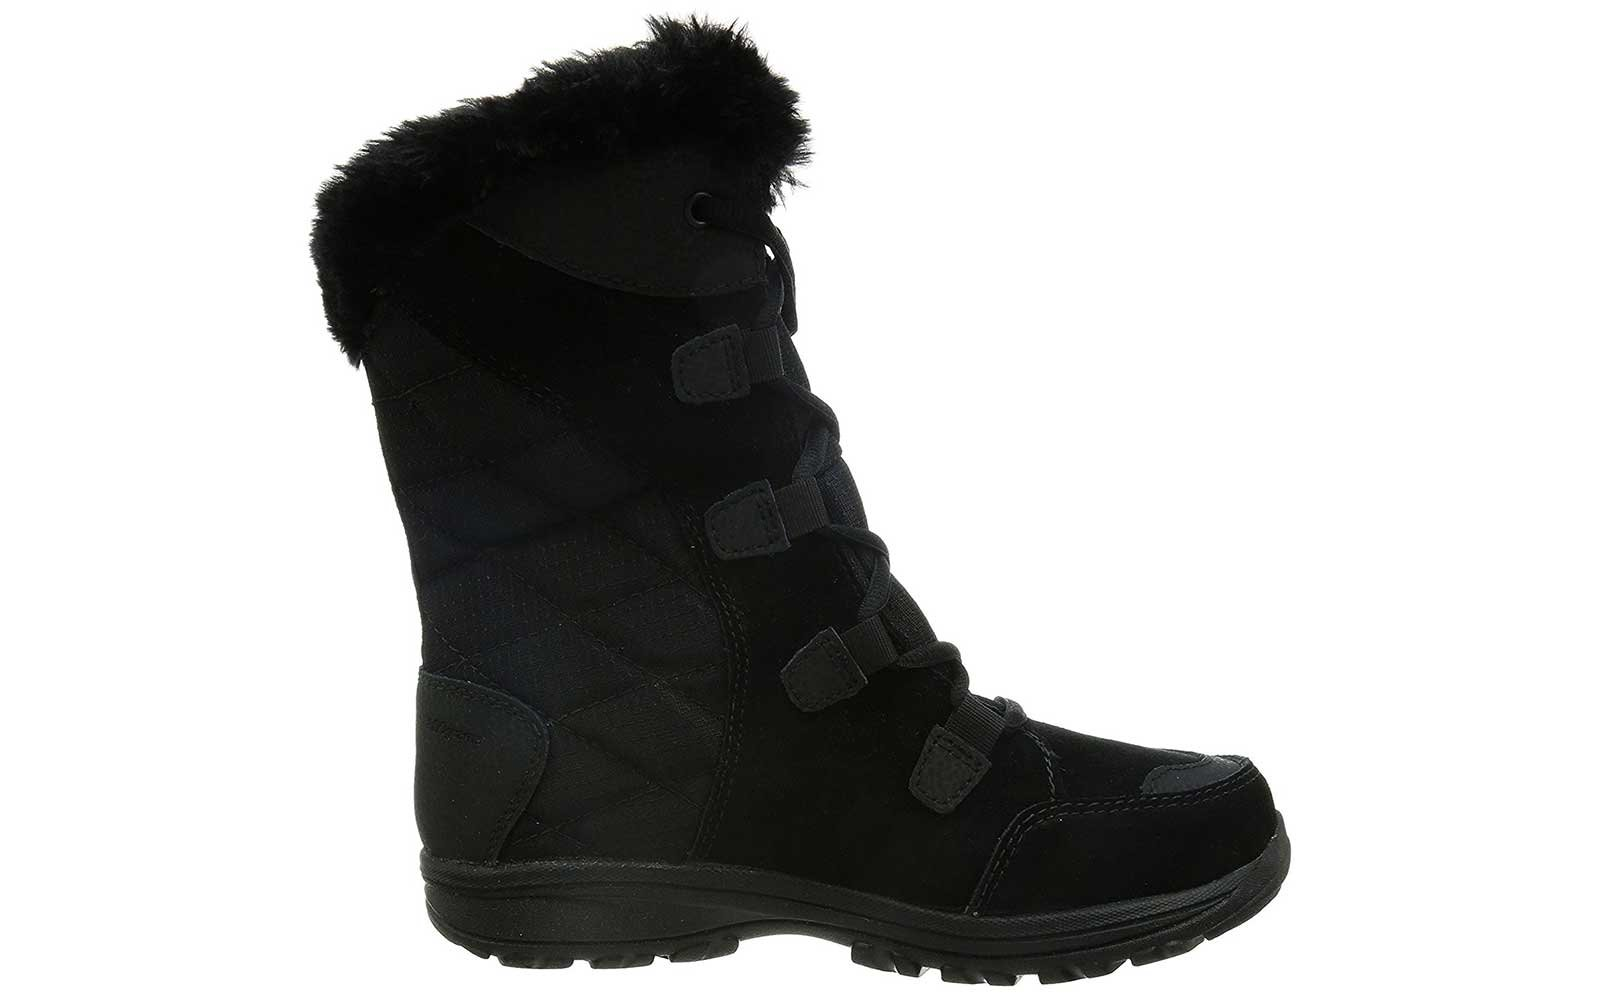 The Best Snow Boots You Can Get on Amazon | Travel + Leisure